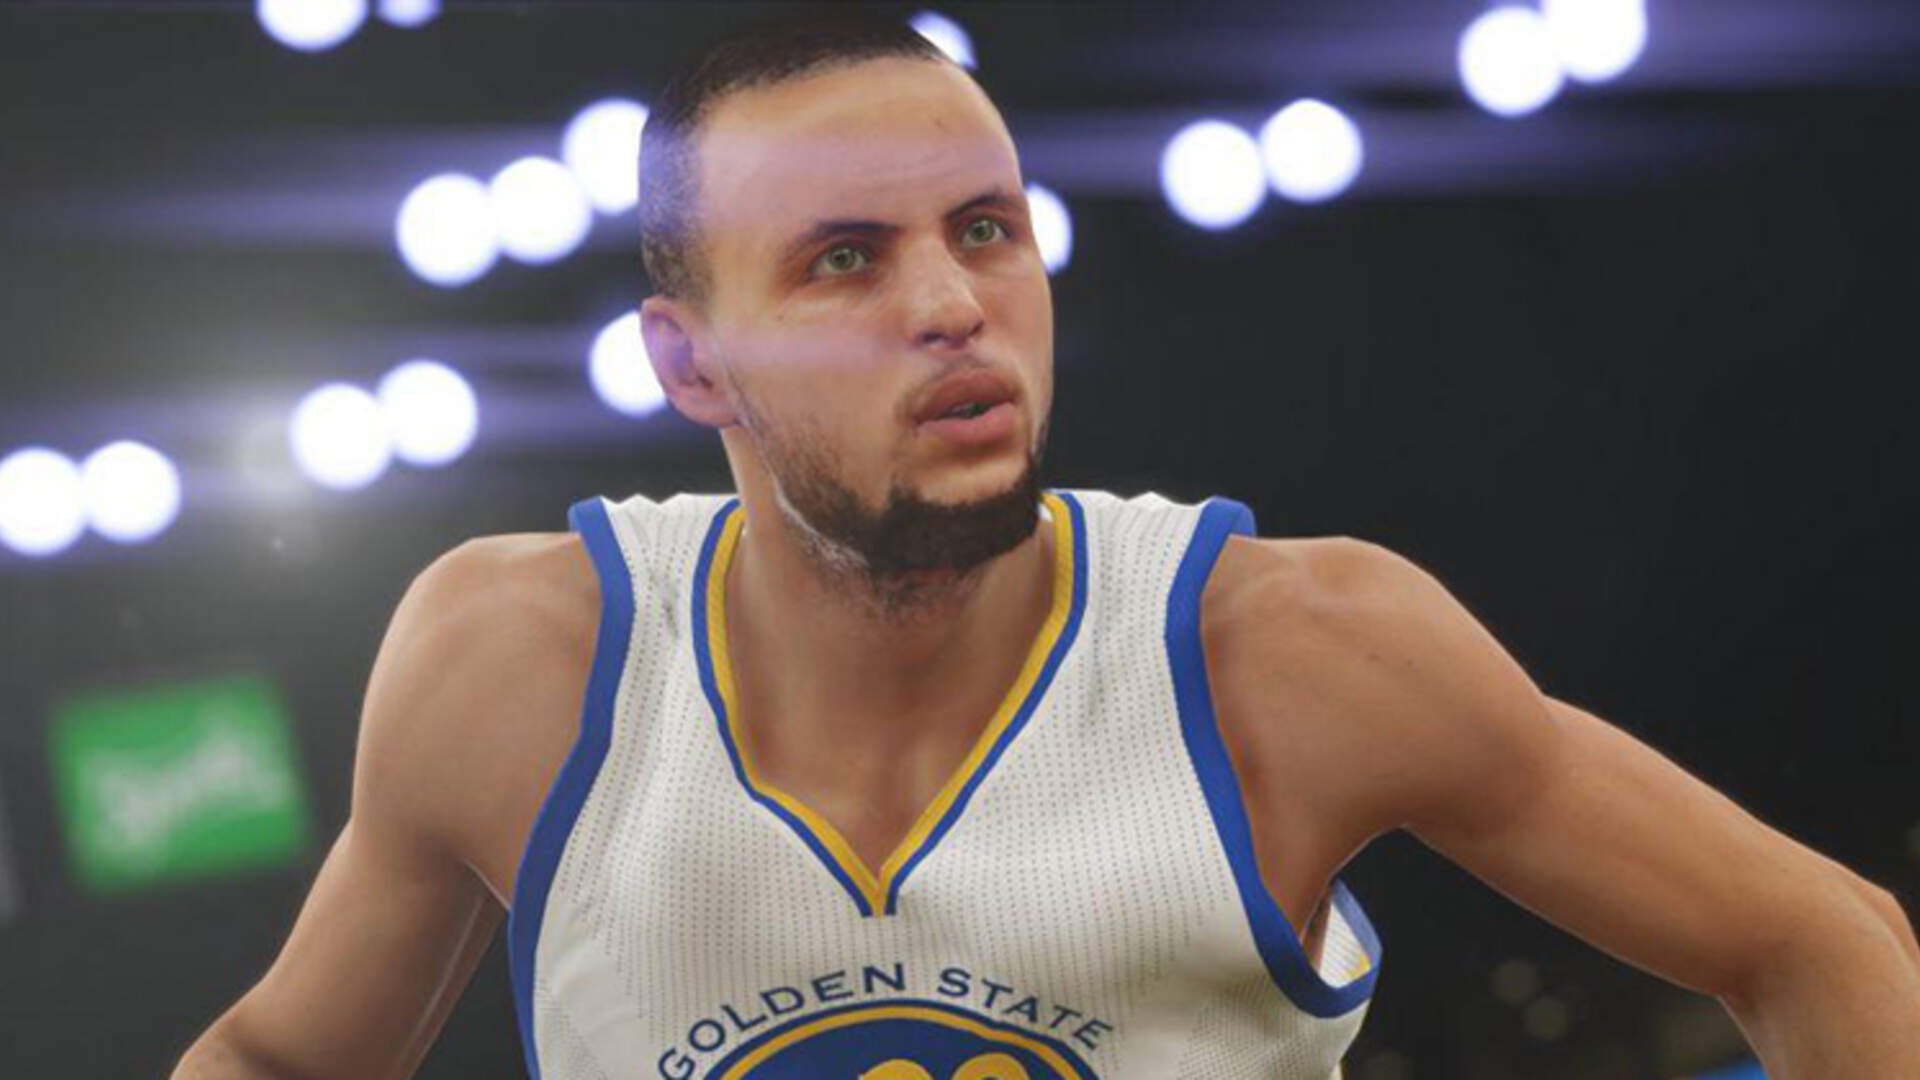 Ranking the Best Sports Game Franchise Modes: From Madden NFL 17 to NBA 2K17